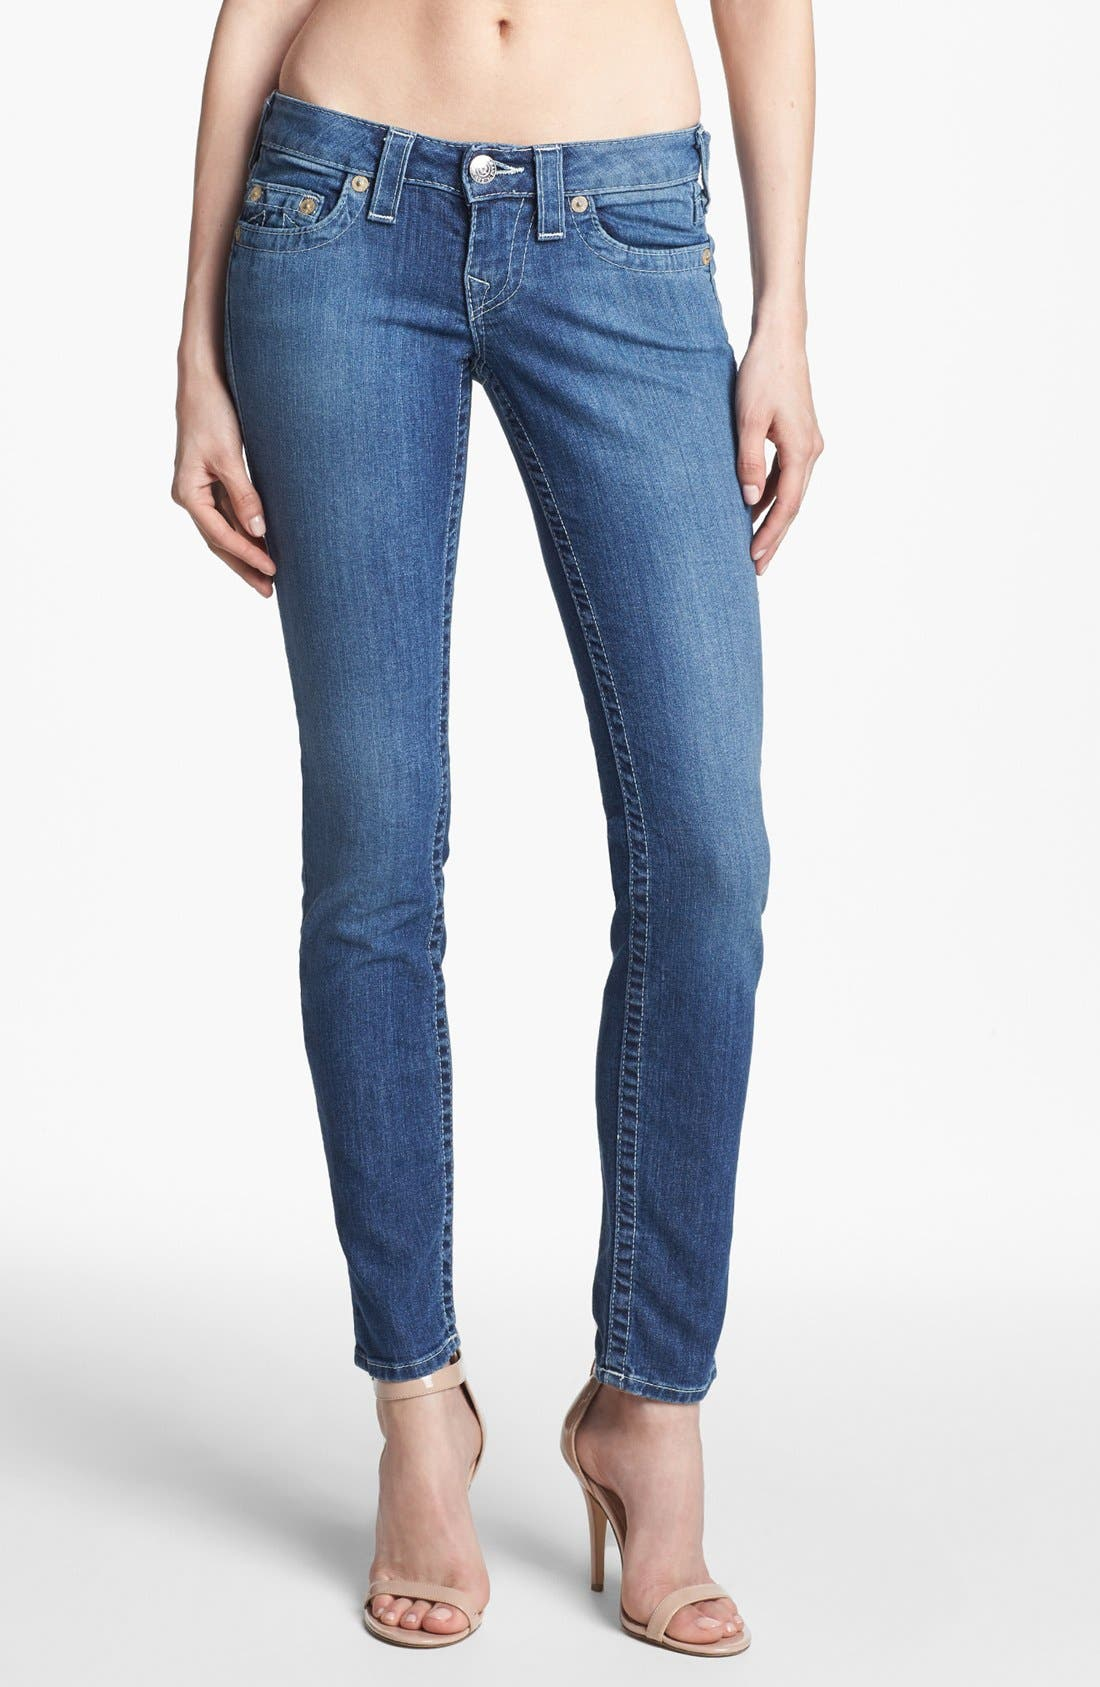 Alternate Image 1 Selected - True Religion Brand Jeans 'Stella' Skinny Jeans (Cabin Creek)